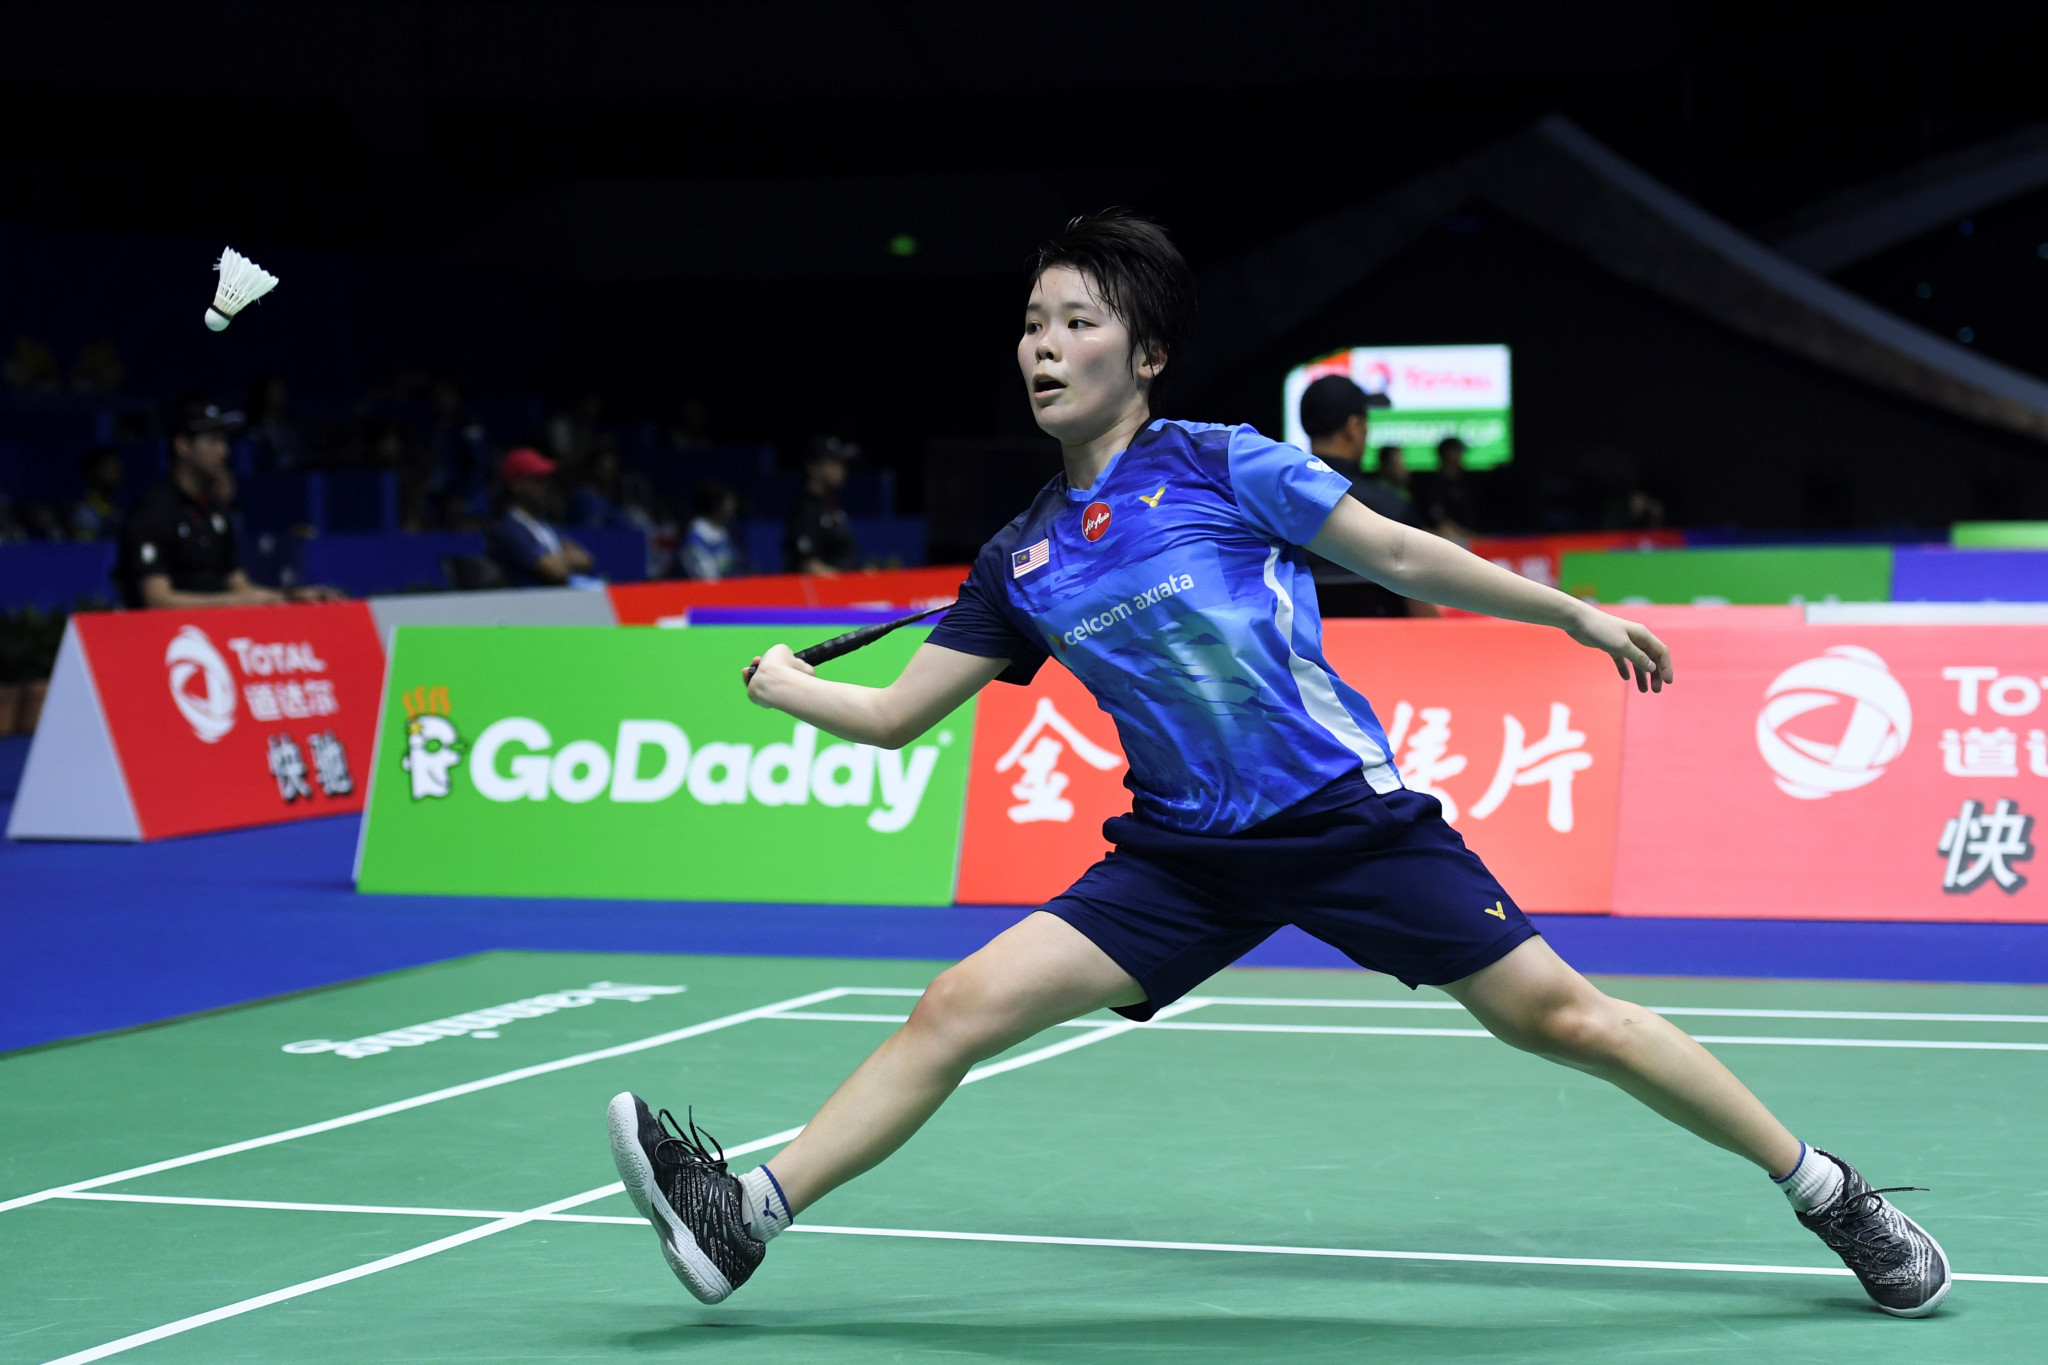 Buenos Aires 2018 Youth Olympic badminton champion Goh Jin Wei retires